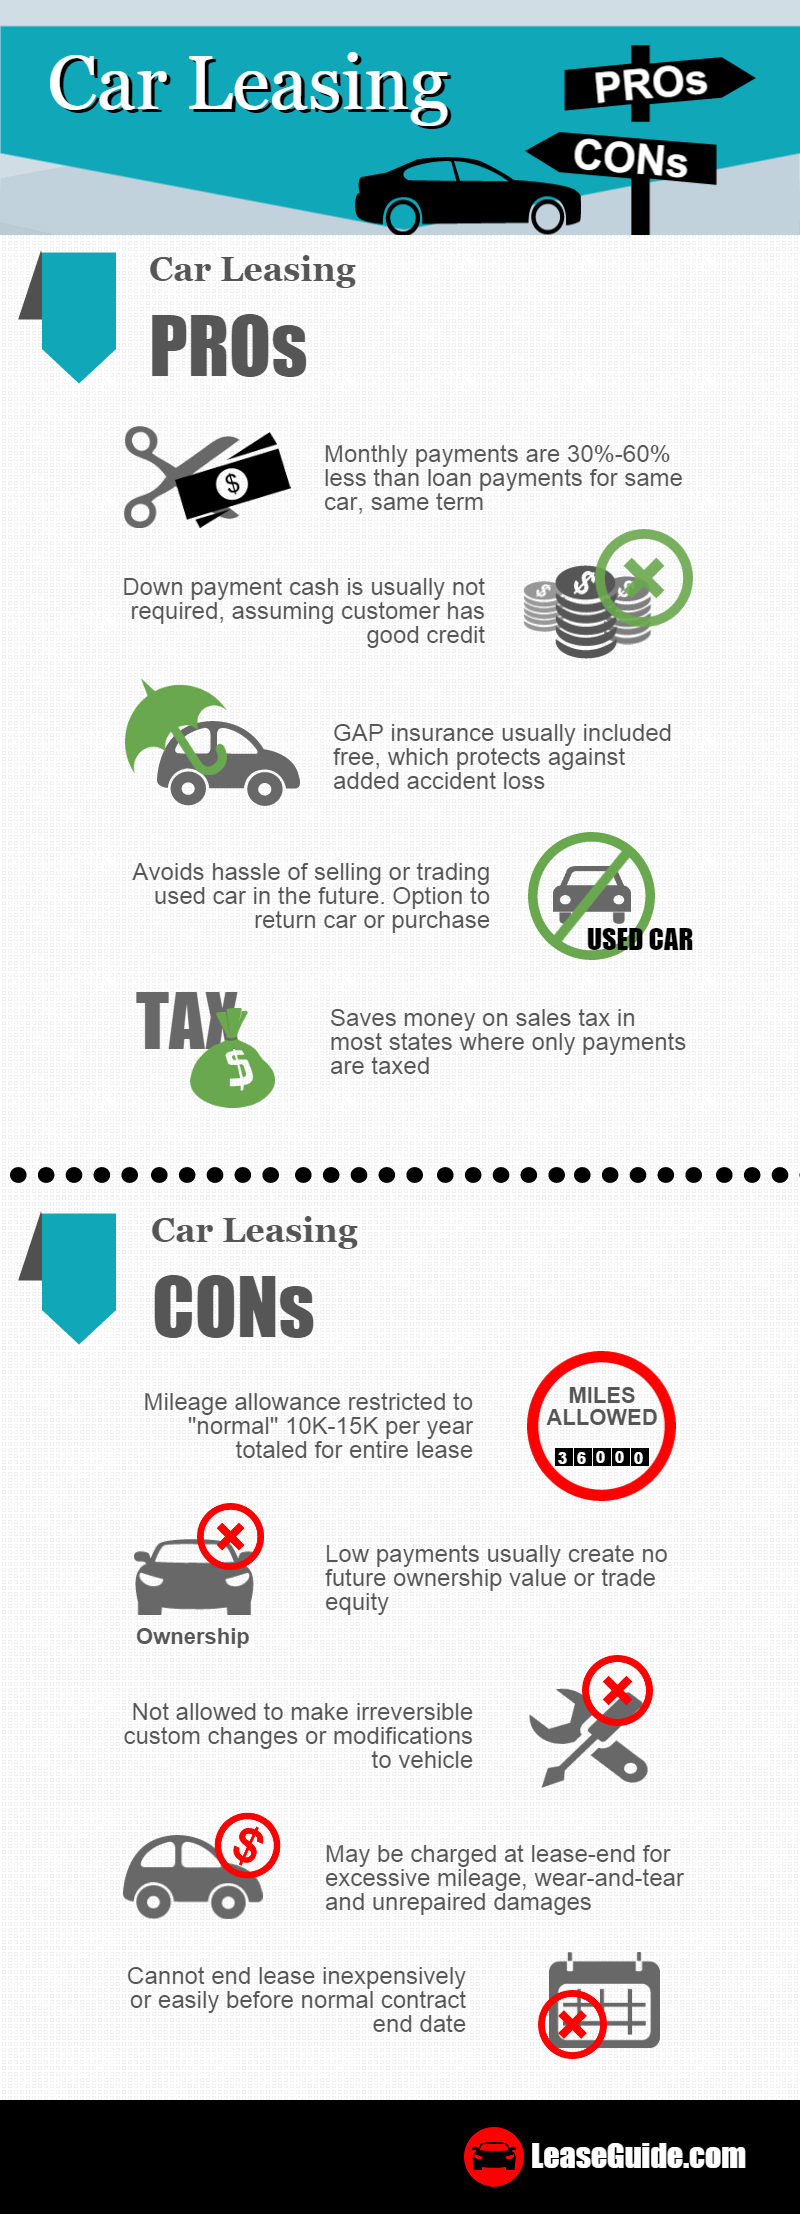 Car Leasing Pros And Cons By Leaseguide Com Car Lease Car Purchase Good Credit